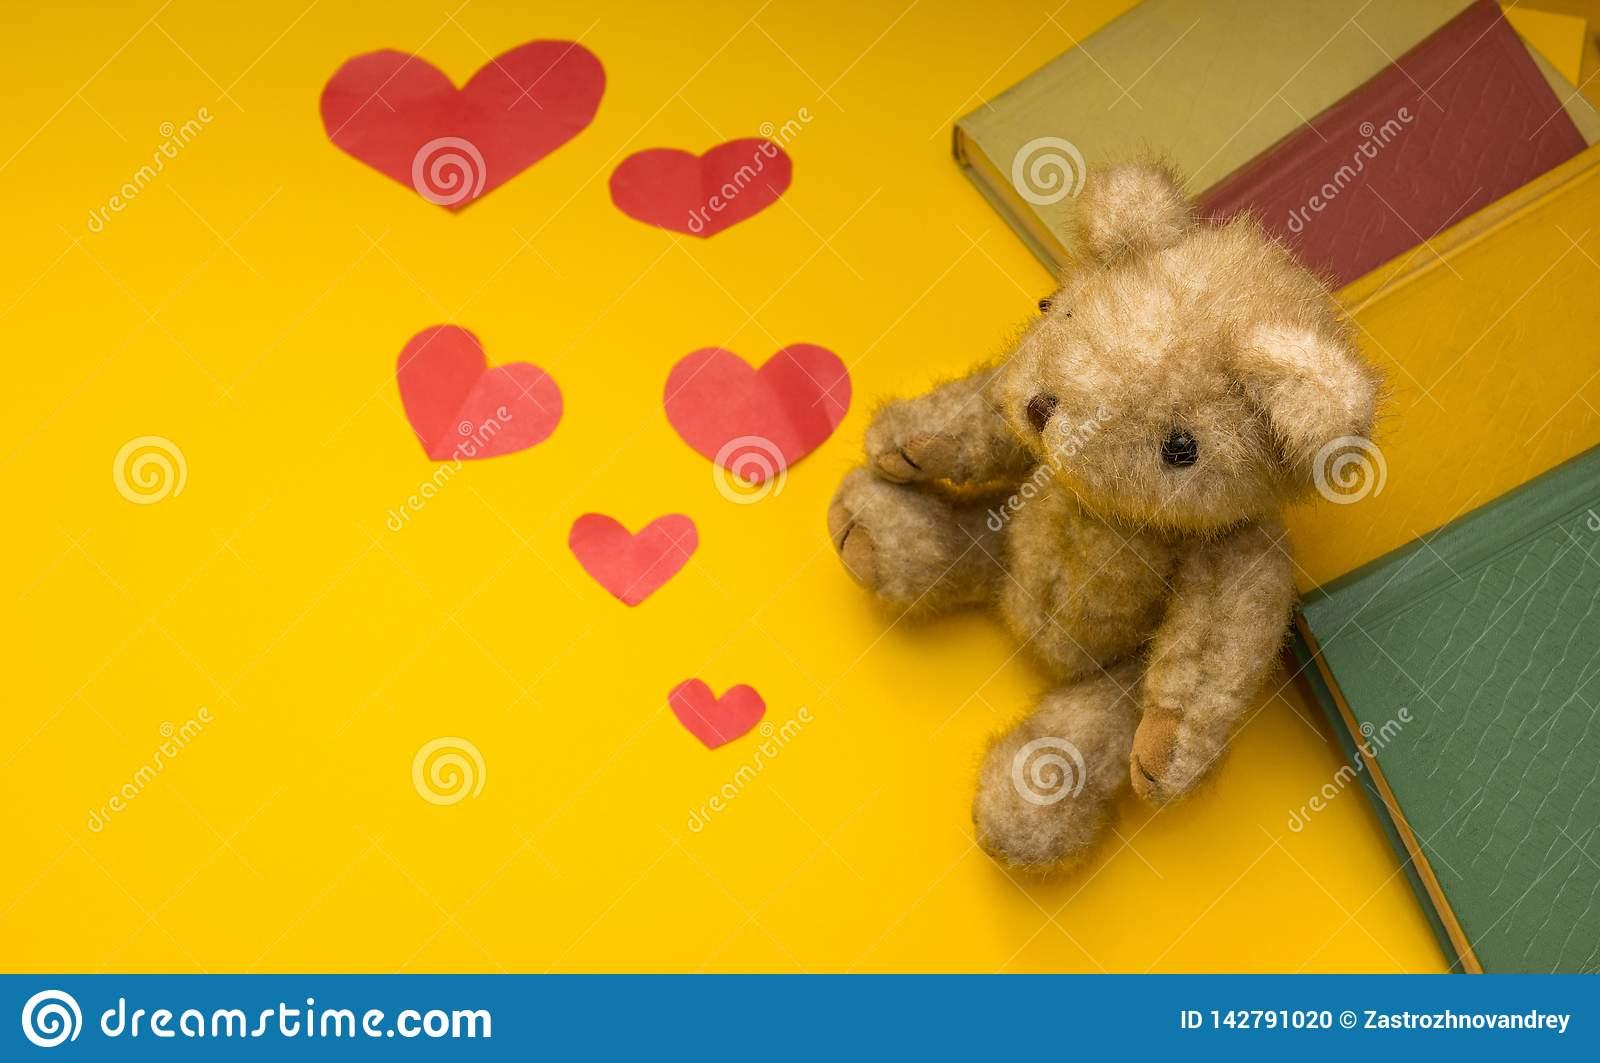 A teddy bear sits near books on a yellow background of scattered hearts